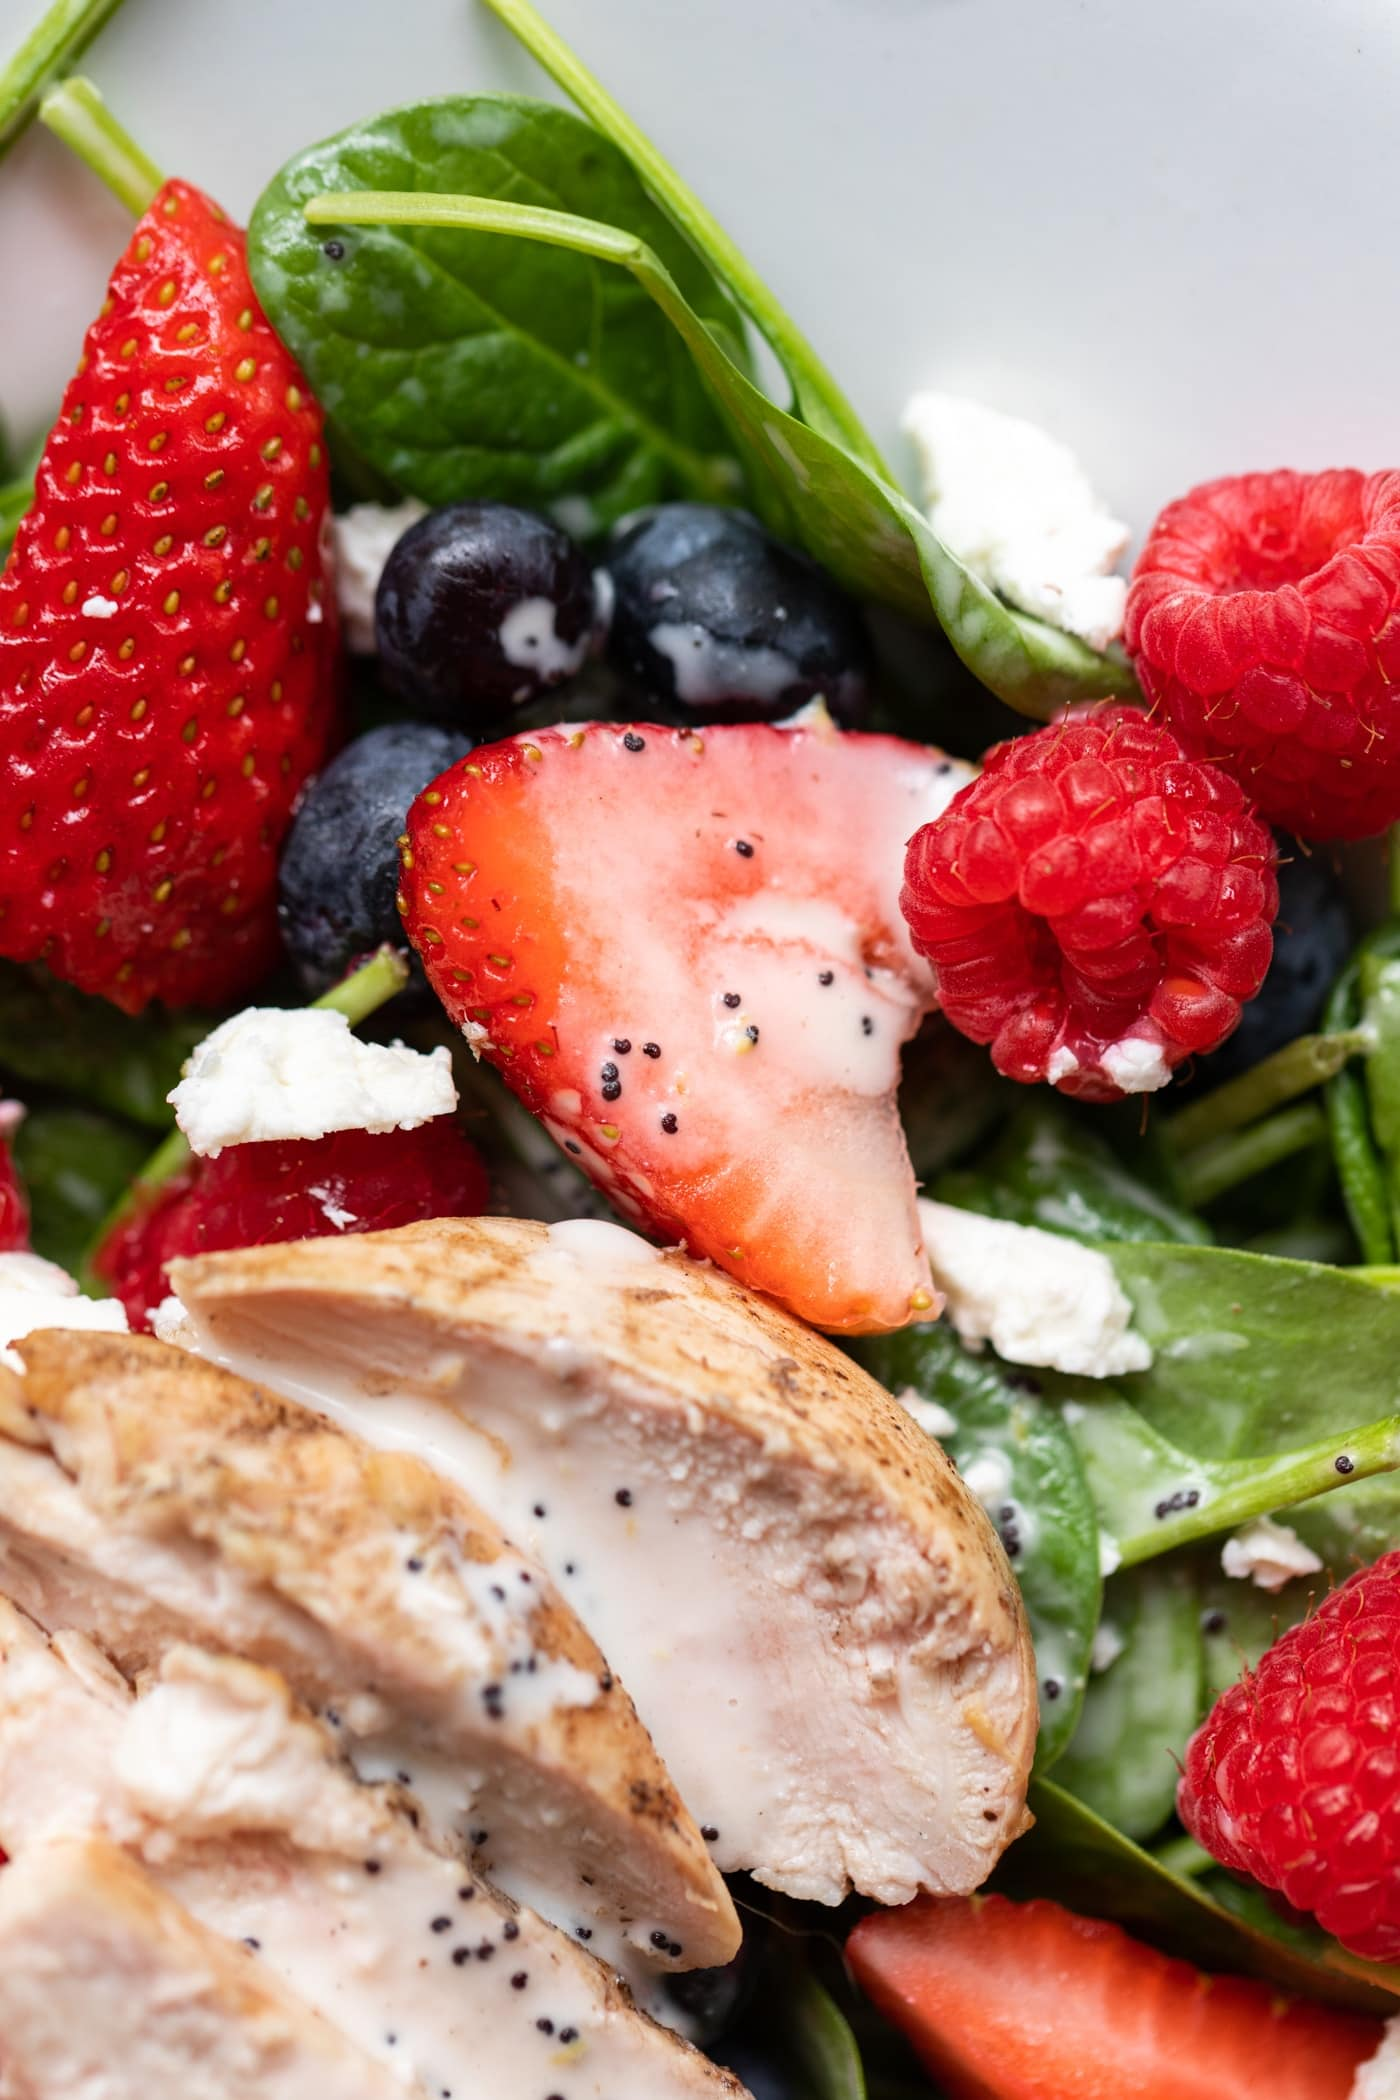 Half piece of strawberry and raspberries and blueberries sitting on spinach with grilled chicken all on white serving platter